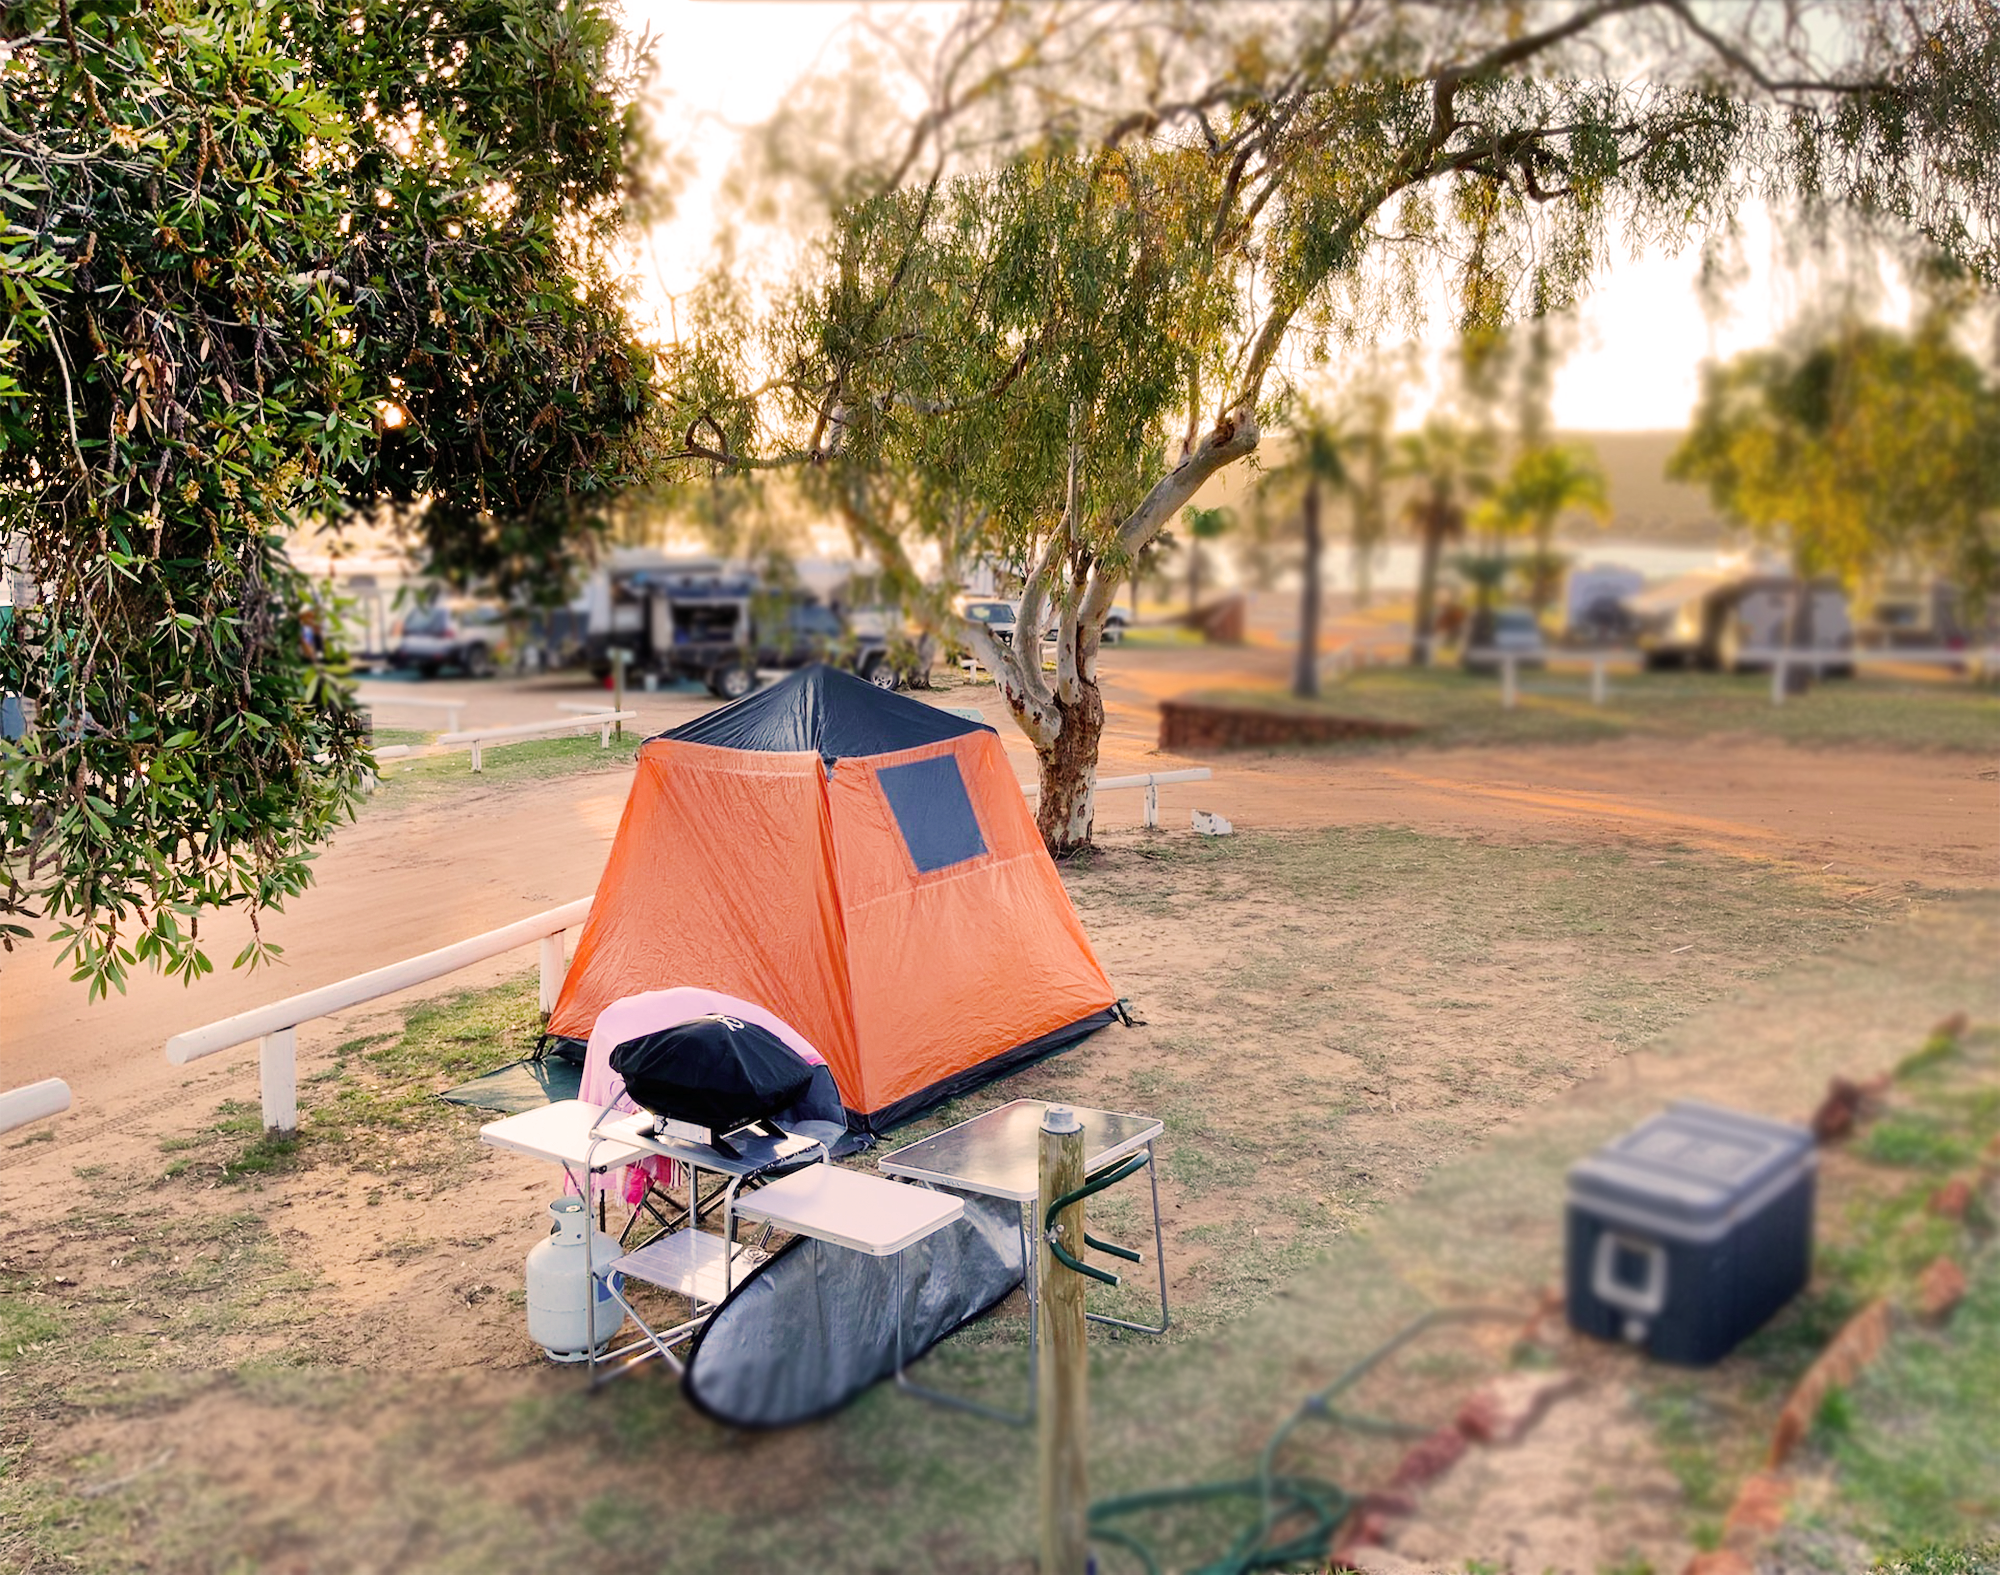 Camping - Wake up to the rustic sound of the bird warbles and the opening of zips in our standard non-powered sites.$38 / two guests per night$30 / single guest per night